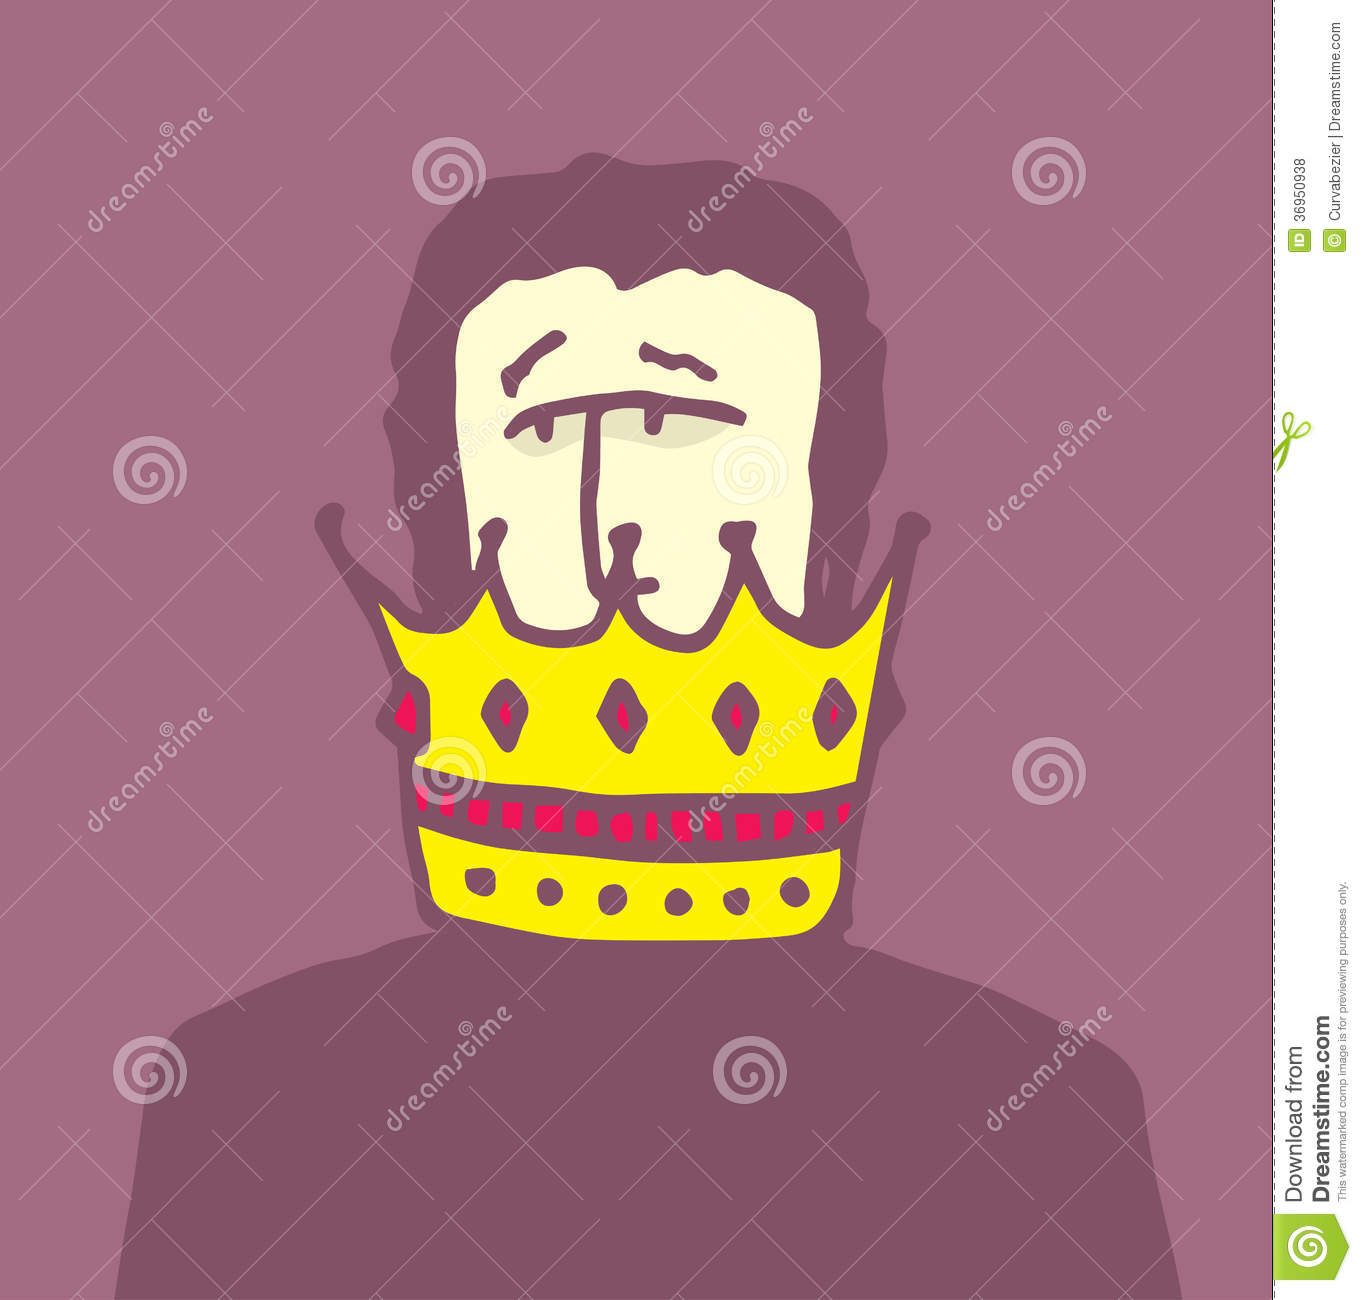 Crown Too Big For Small Head Stock Illustration Illustration Of Cartoon Head 36950938 Crown on my head like a god  animation  yuki takashi (very shooort,not very good too). dreamstime com